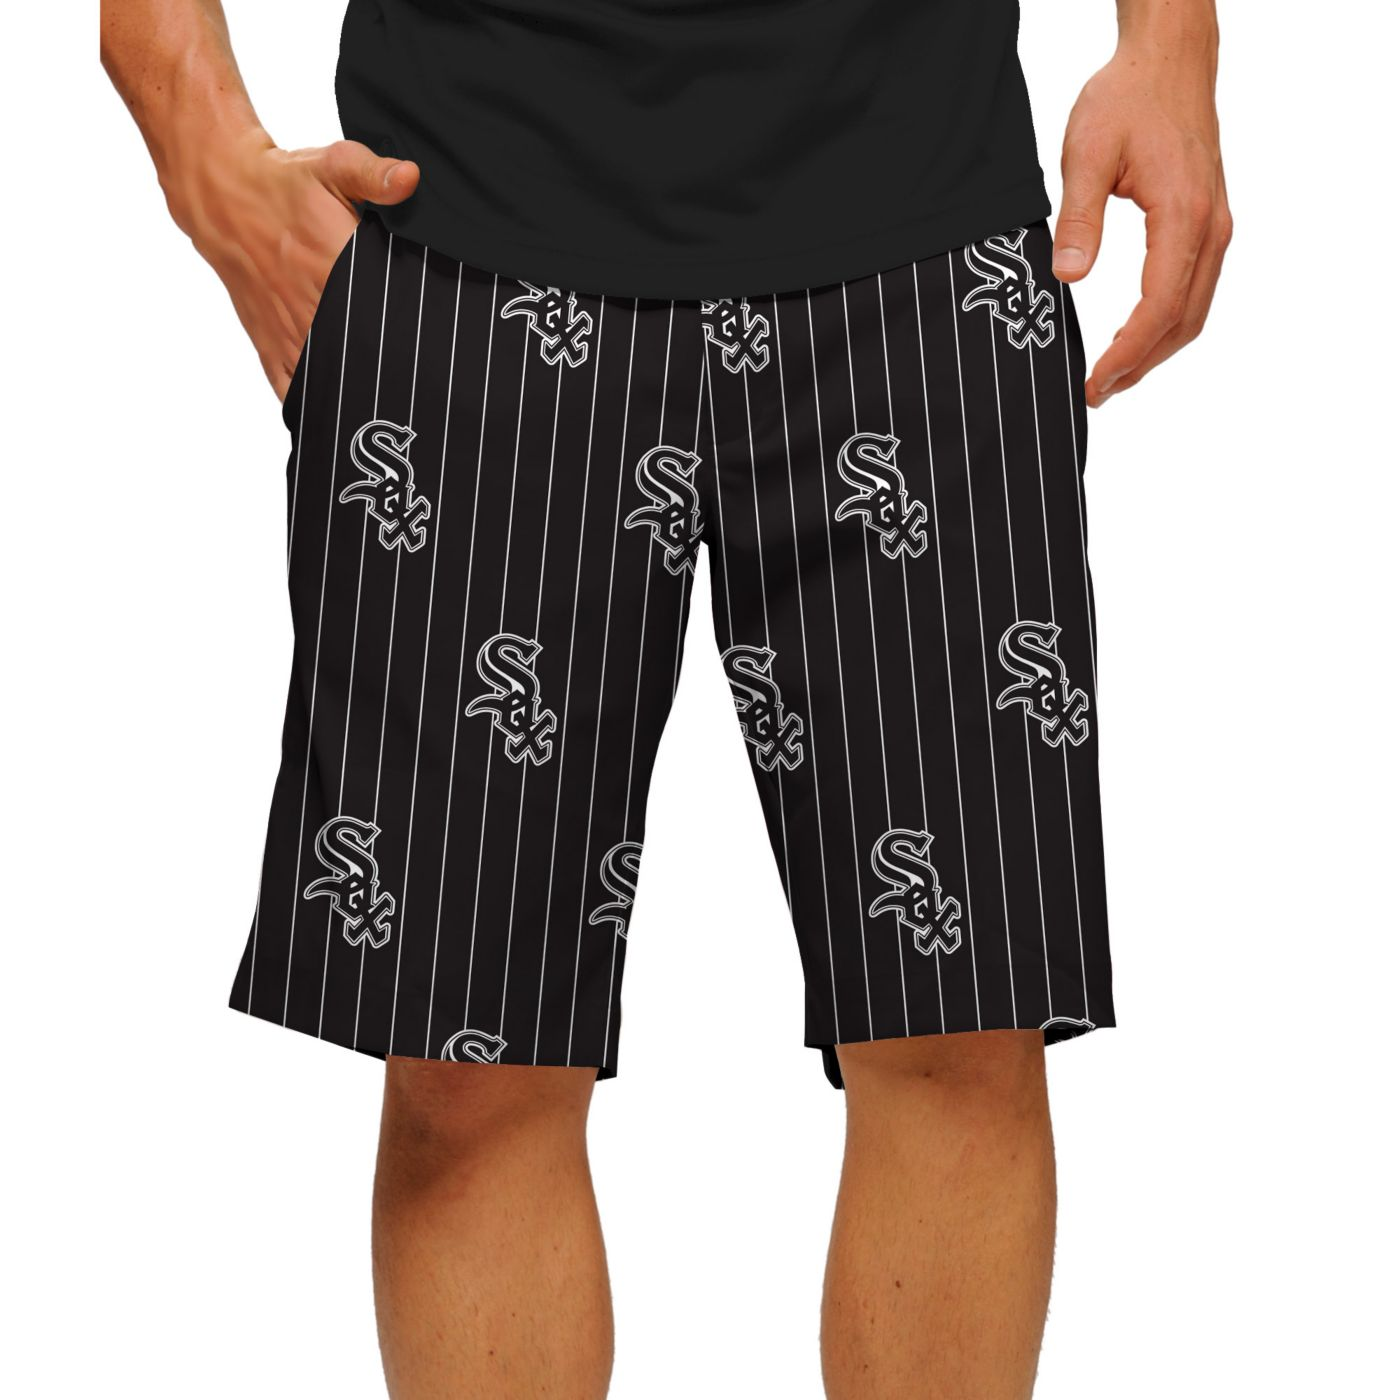 Loudmouth Men's Chicago White Sox Golf Shorts